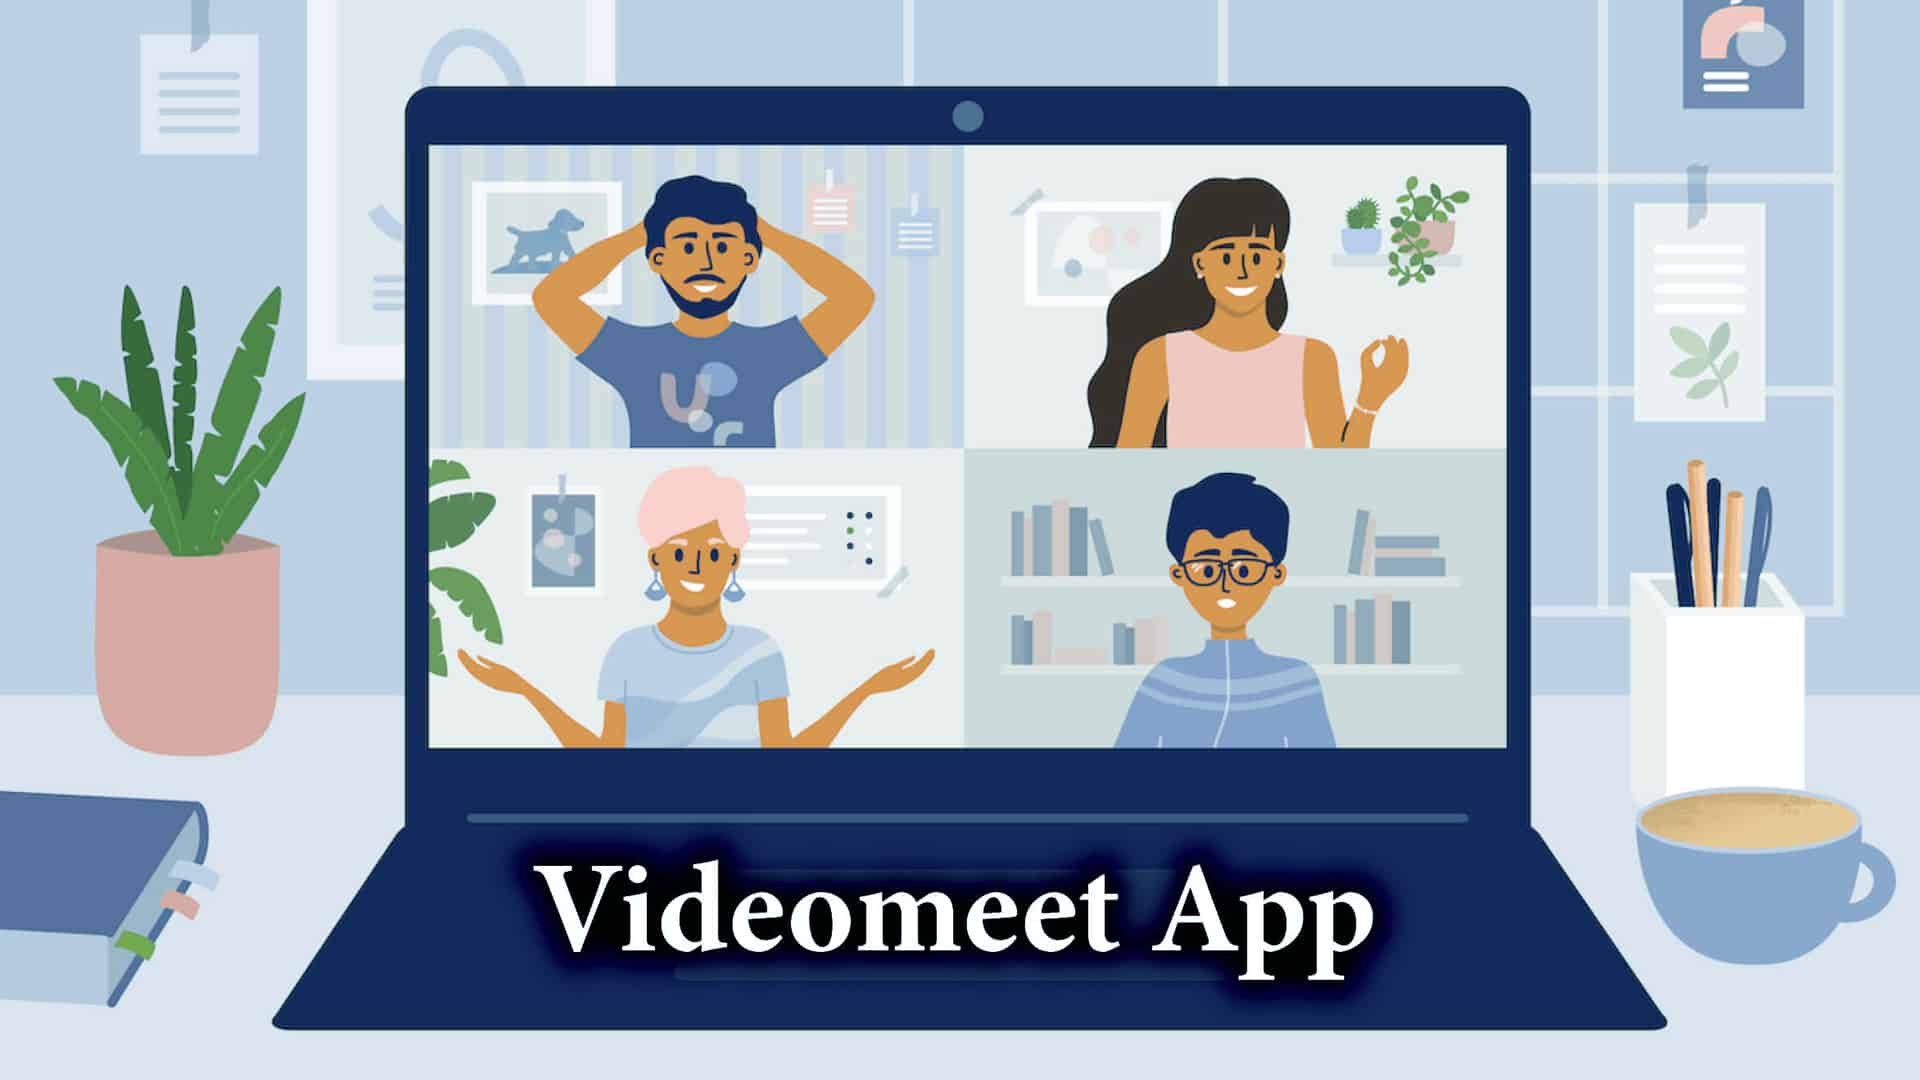 Jaipur-based startup launches VideoMeet with AI features to aid Video Conferencing